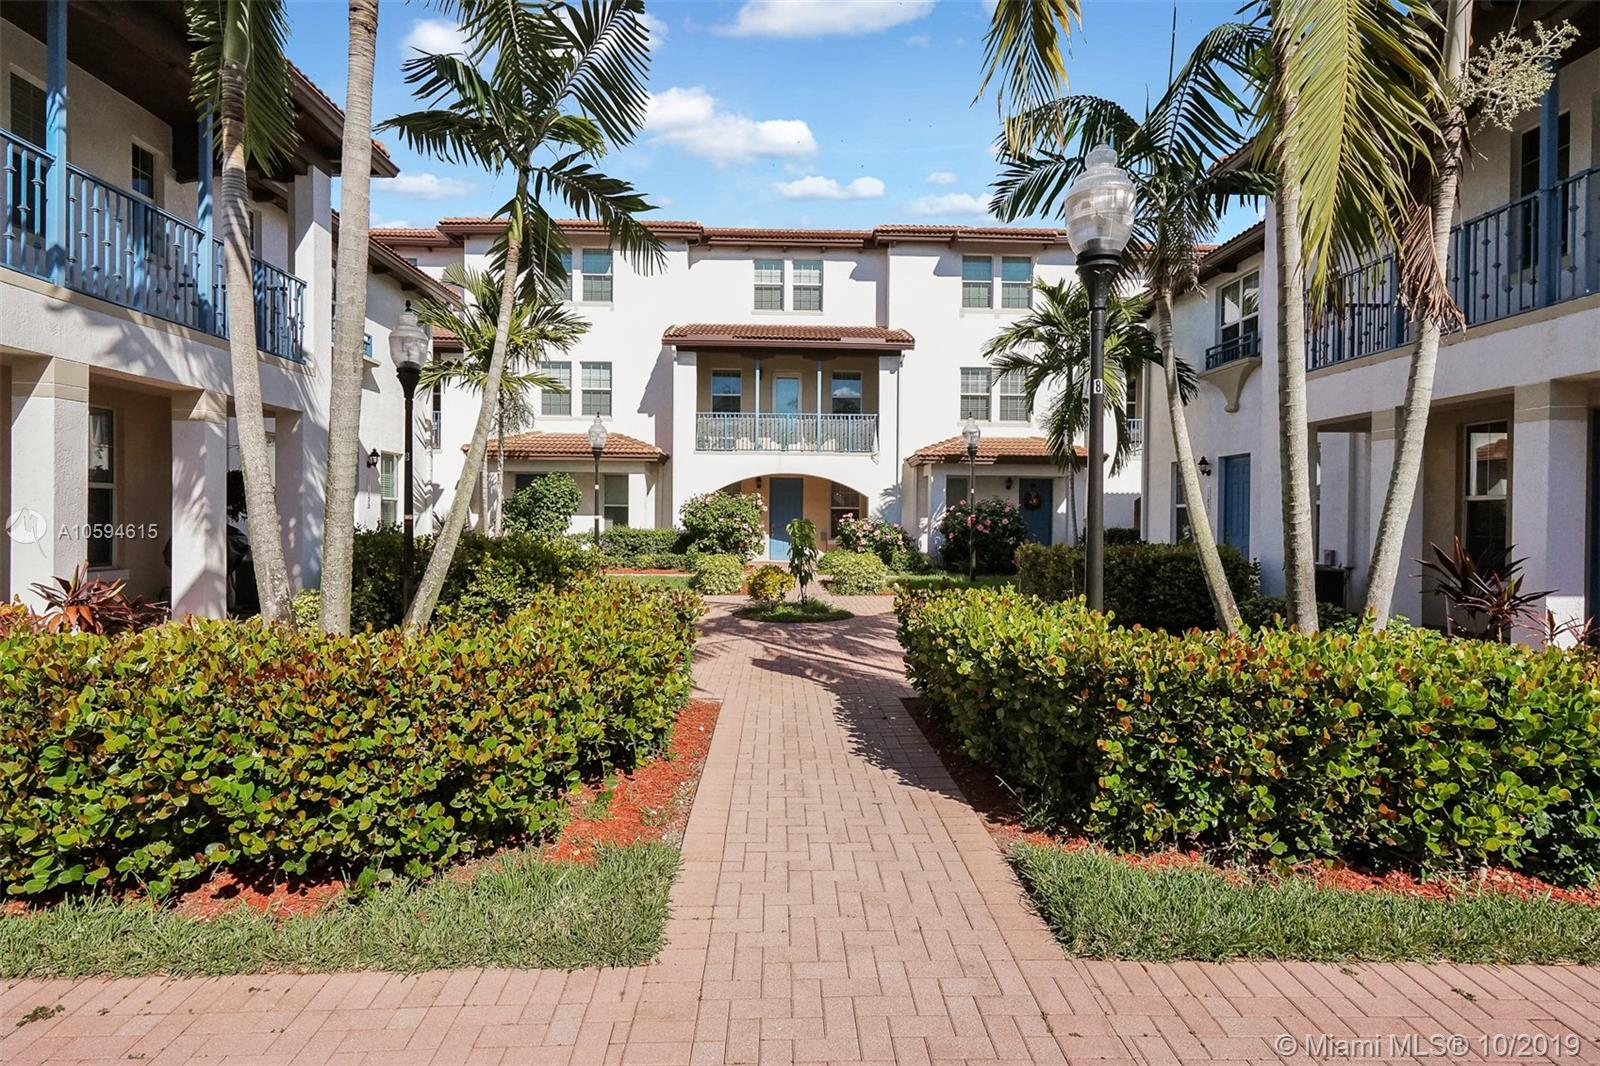 2654 S W 118th #2654 For Sale A10594615, FL